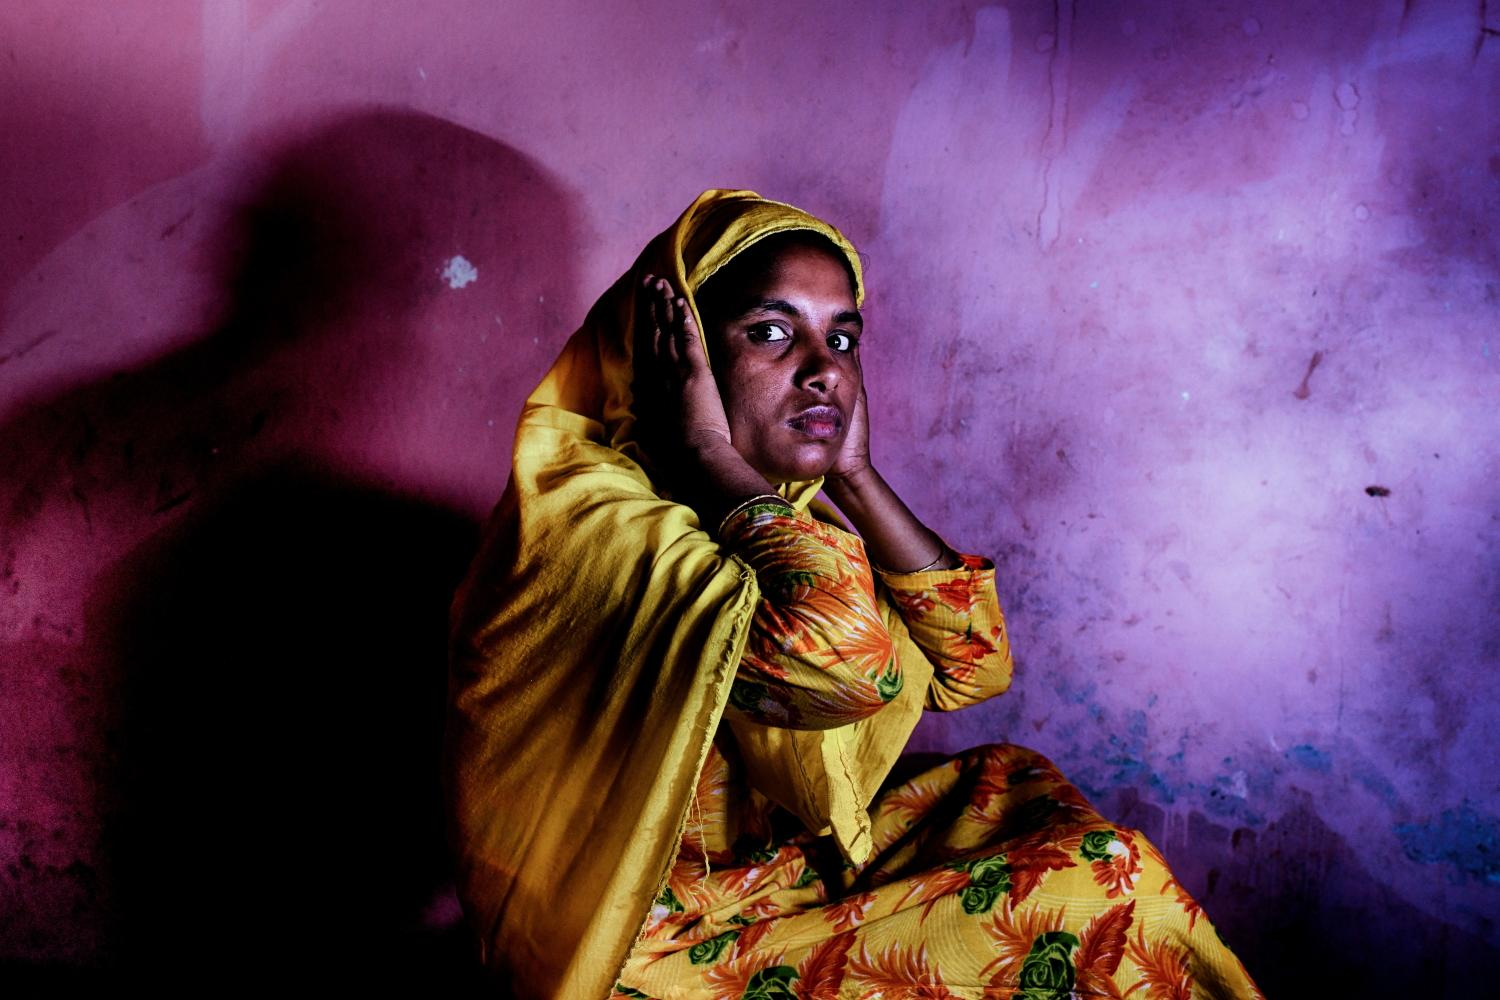 Textile worker Razia Begum (30) was beaten by her husband when she refused to give last saving 100 taka (1 USD) to her textile worker husband. In pain, with scars Razia is unable to seek help and having hearing problems now. Due to Covid19 lock down she can not go to any hospital for treatment. Tongi, Bangladesh